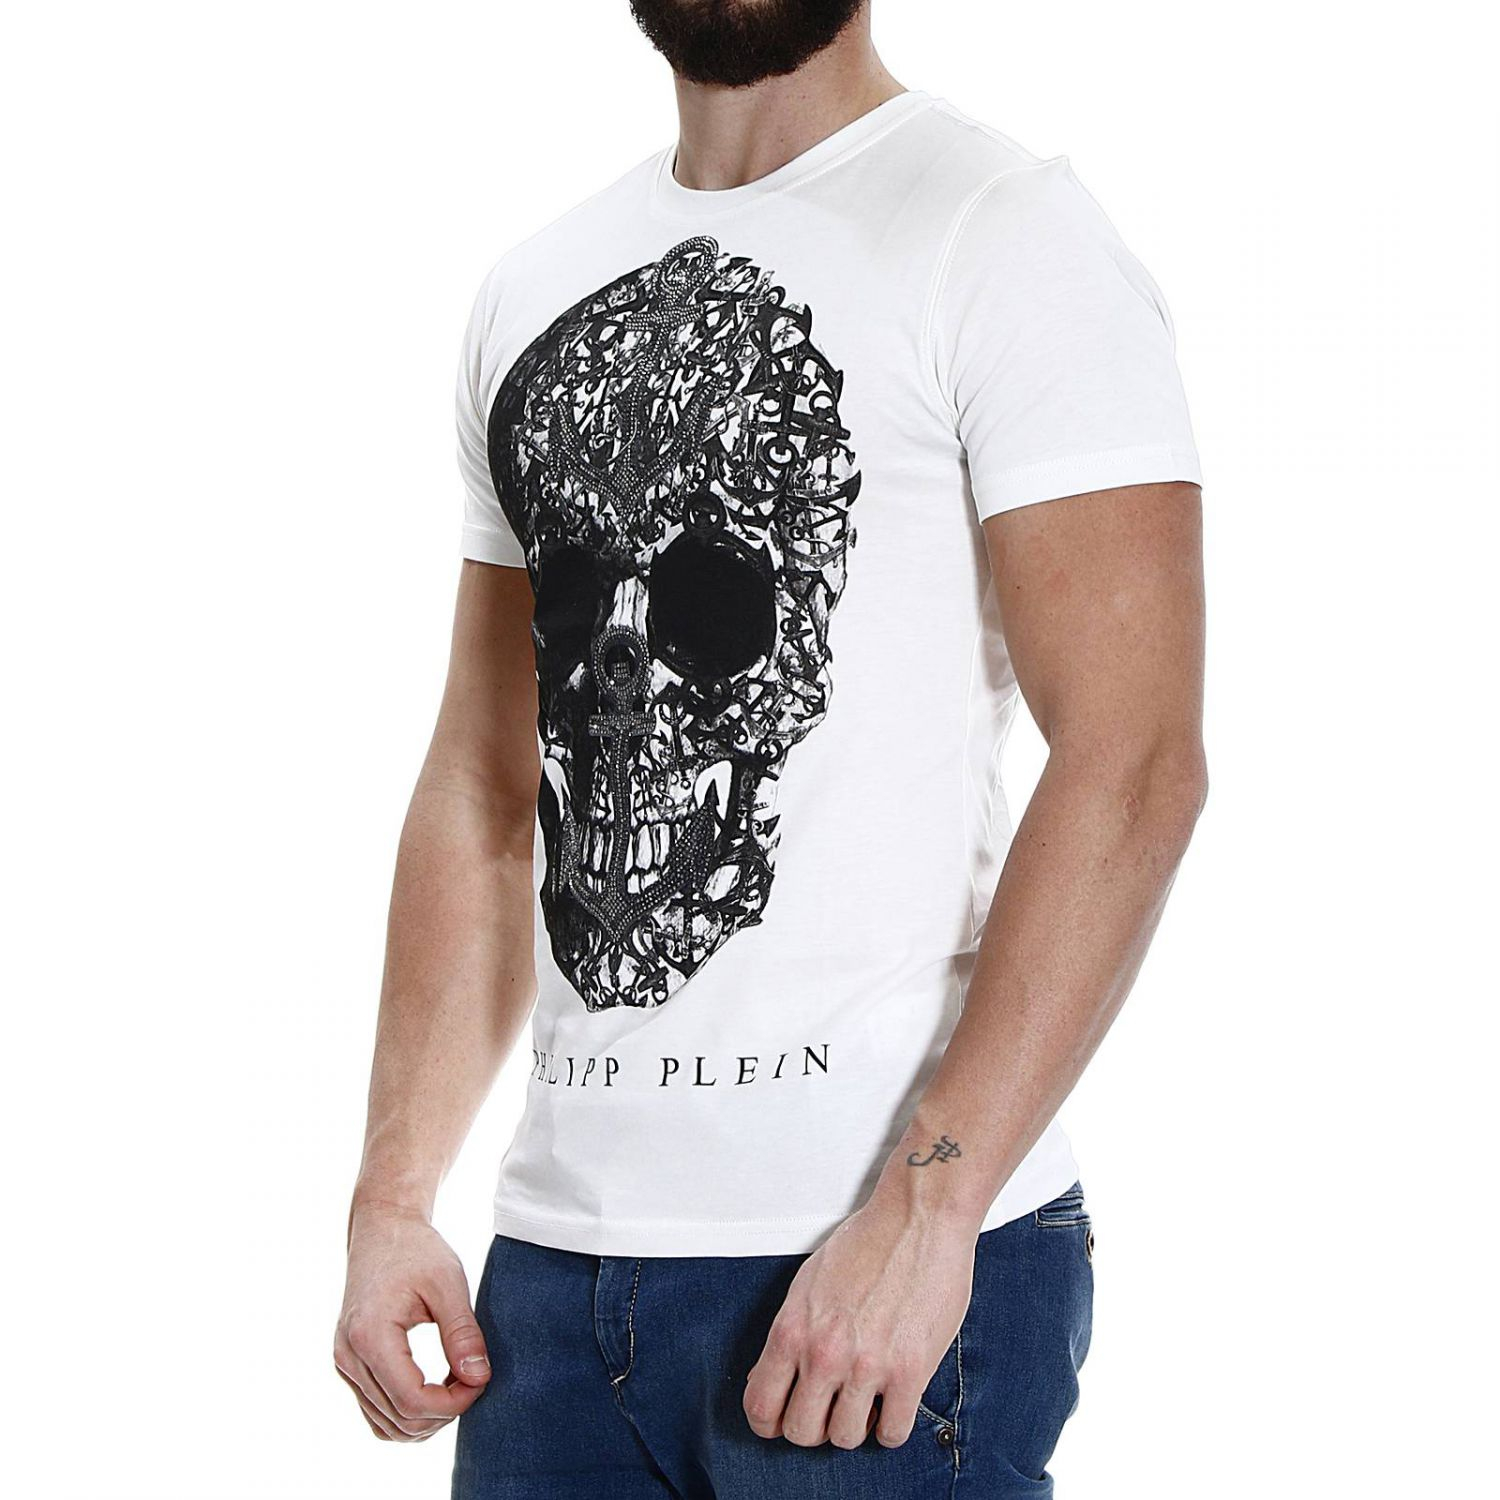 philipp plein t shirt in white for men lyst. Black Bedroom Furniture Sets. Home Design Ideas